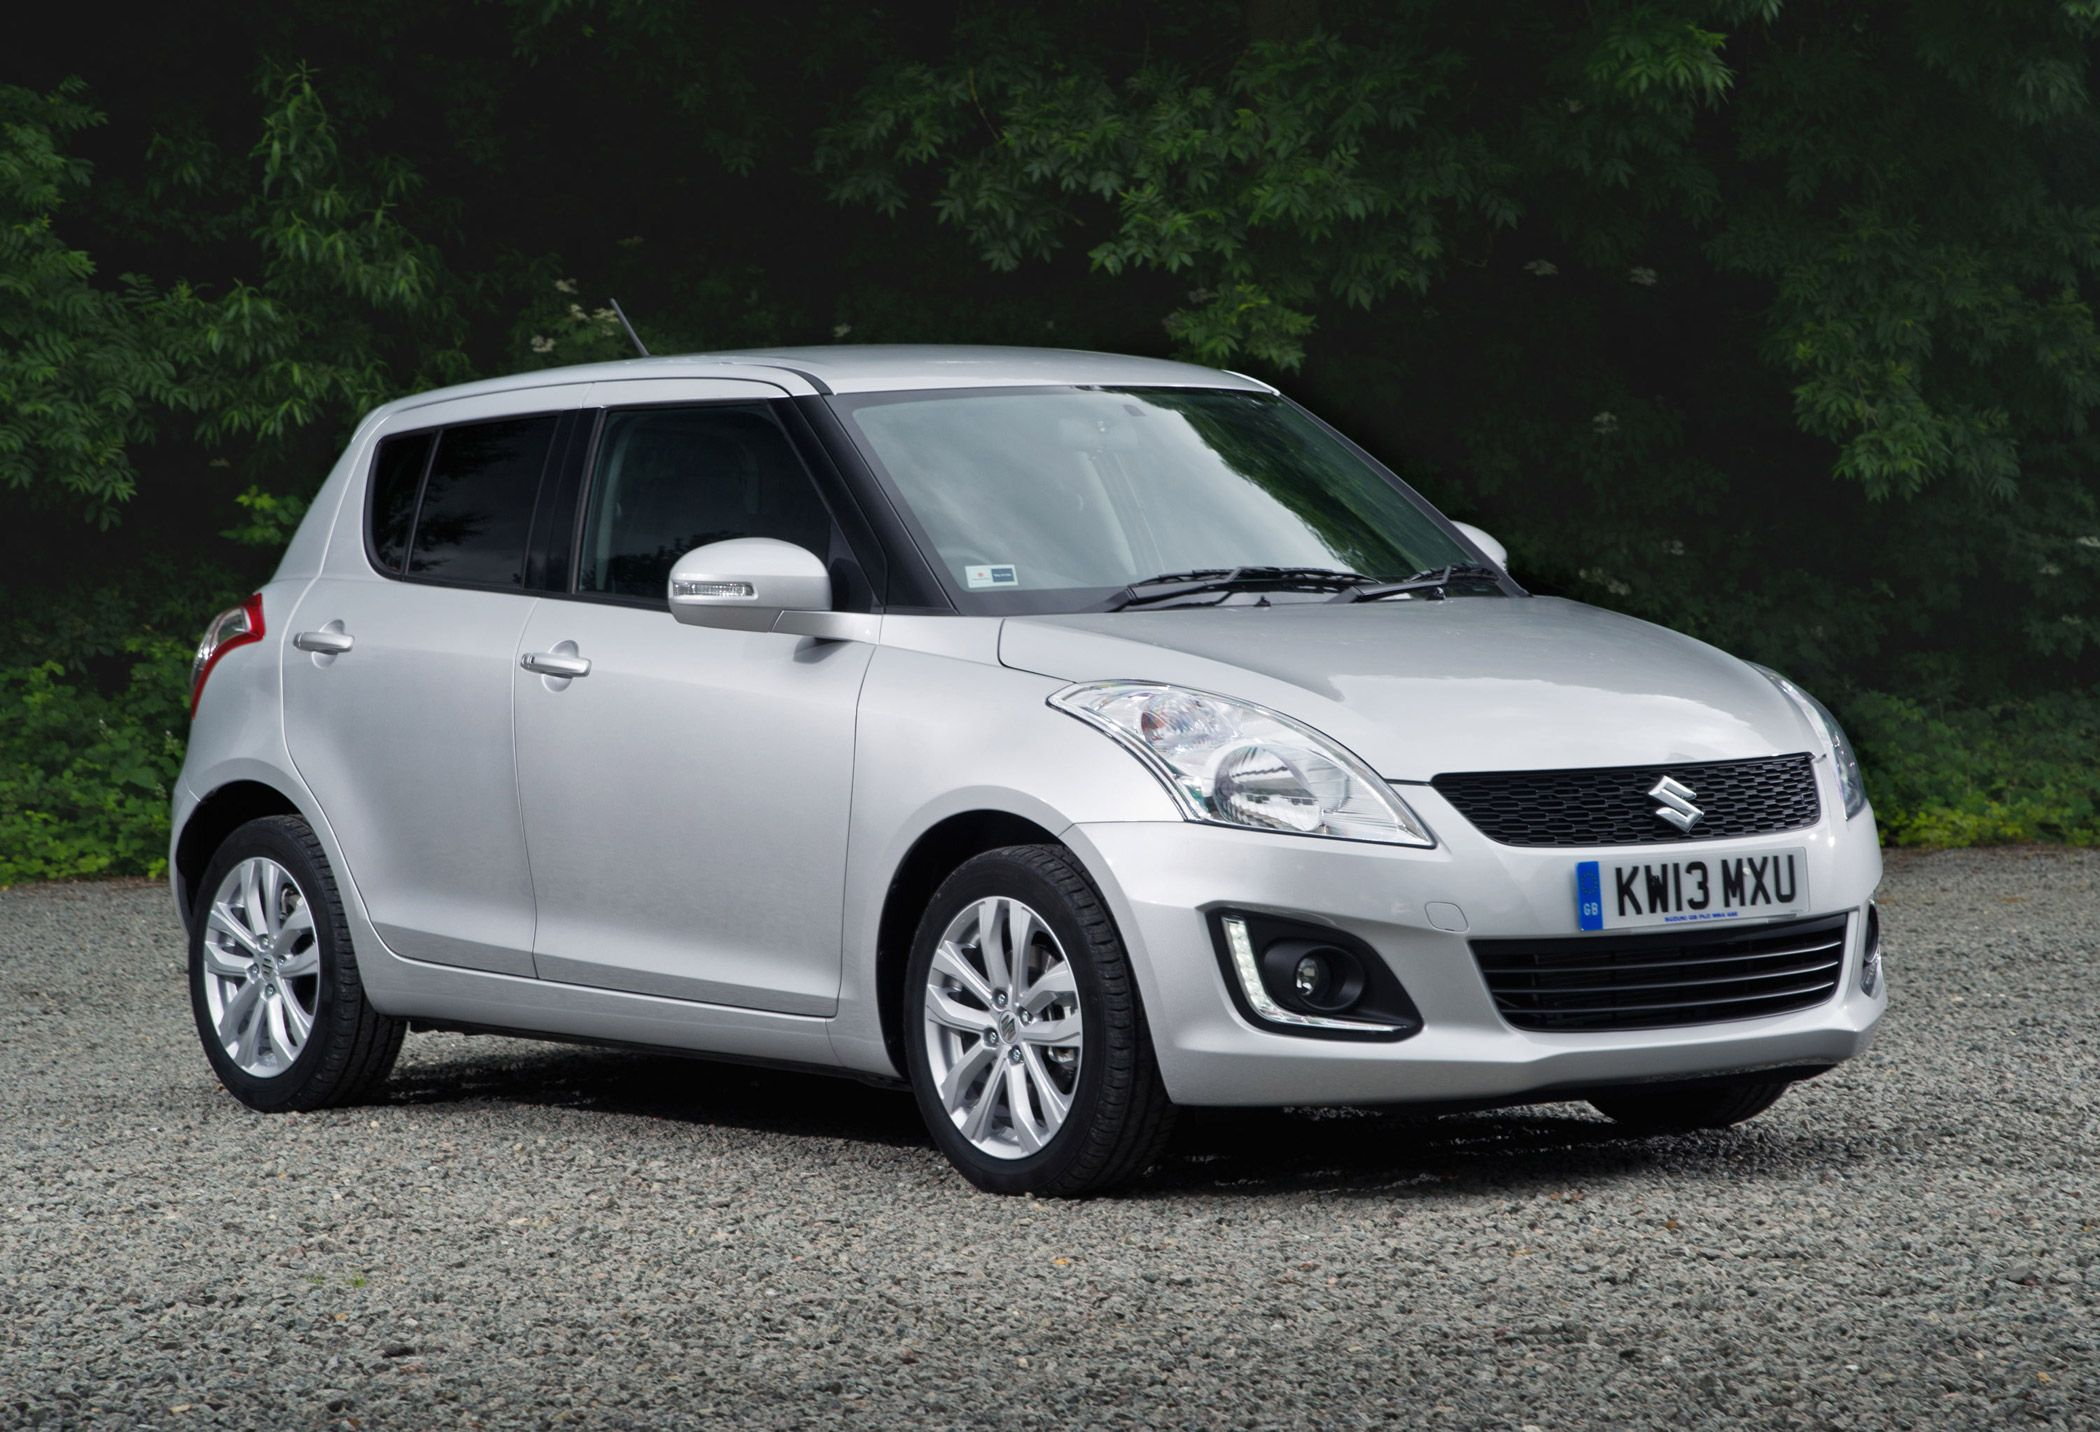 Suzuki swift sport 2013 pictures to pin on pinterest - Silver Suzuki Swift Sport